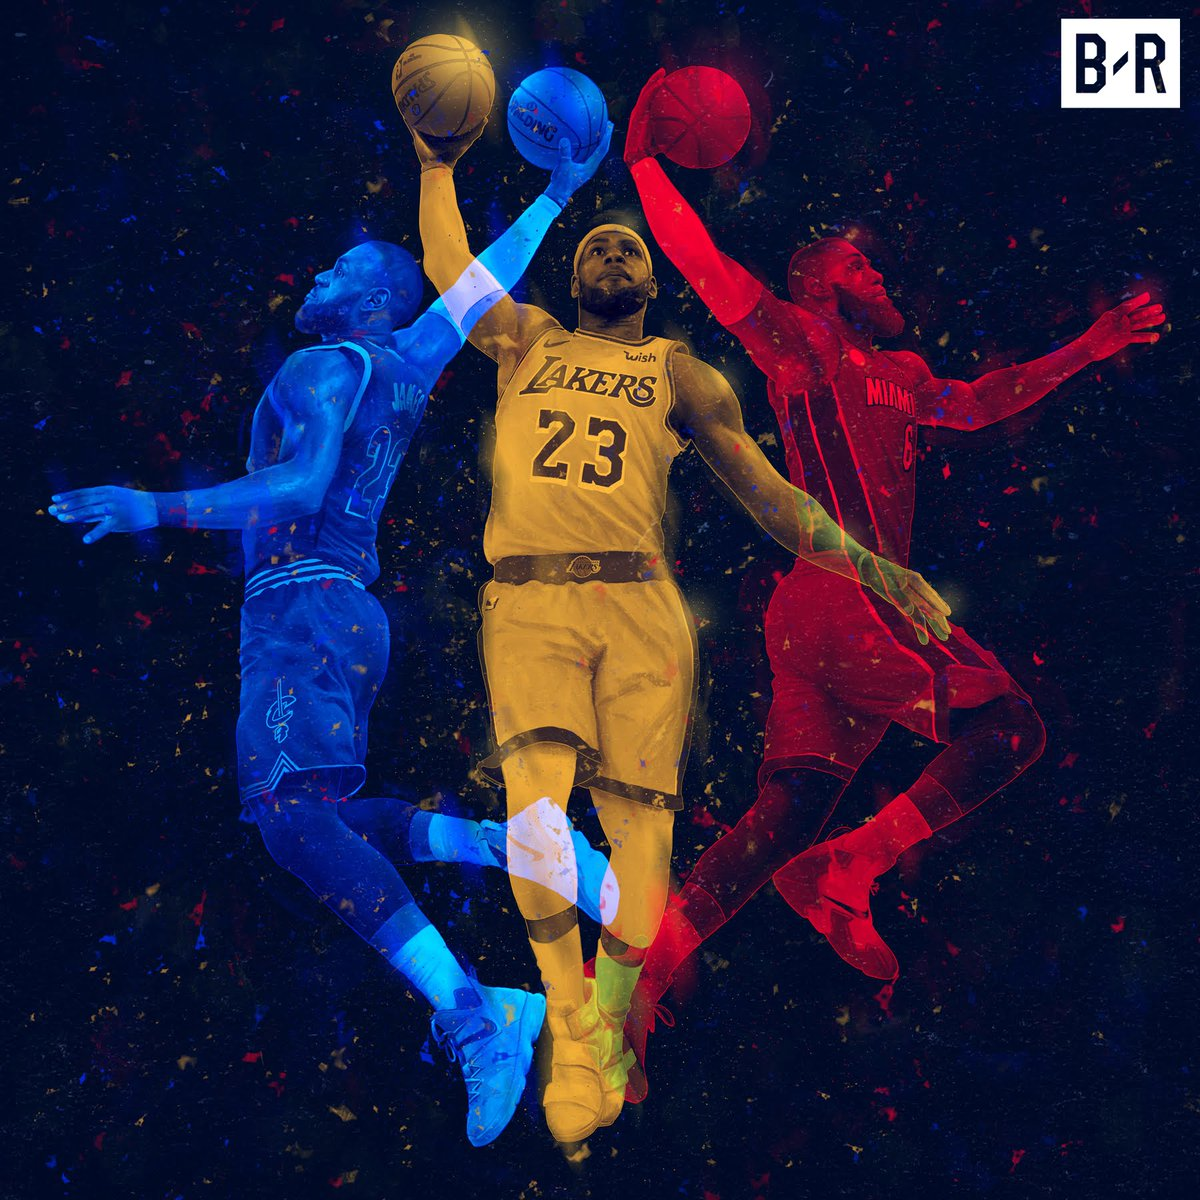 @BleacherReport's photo on Dwayne